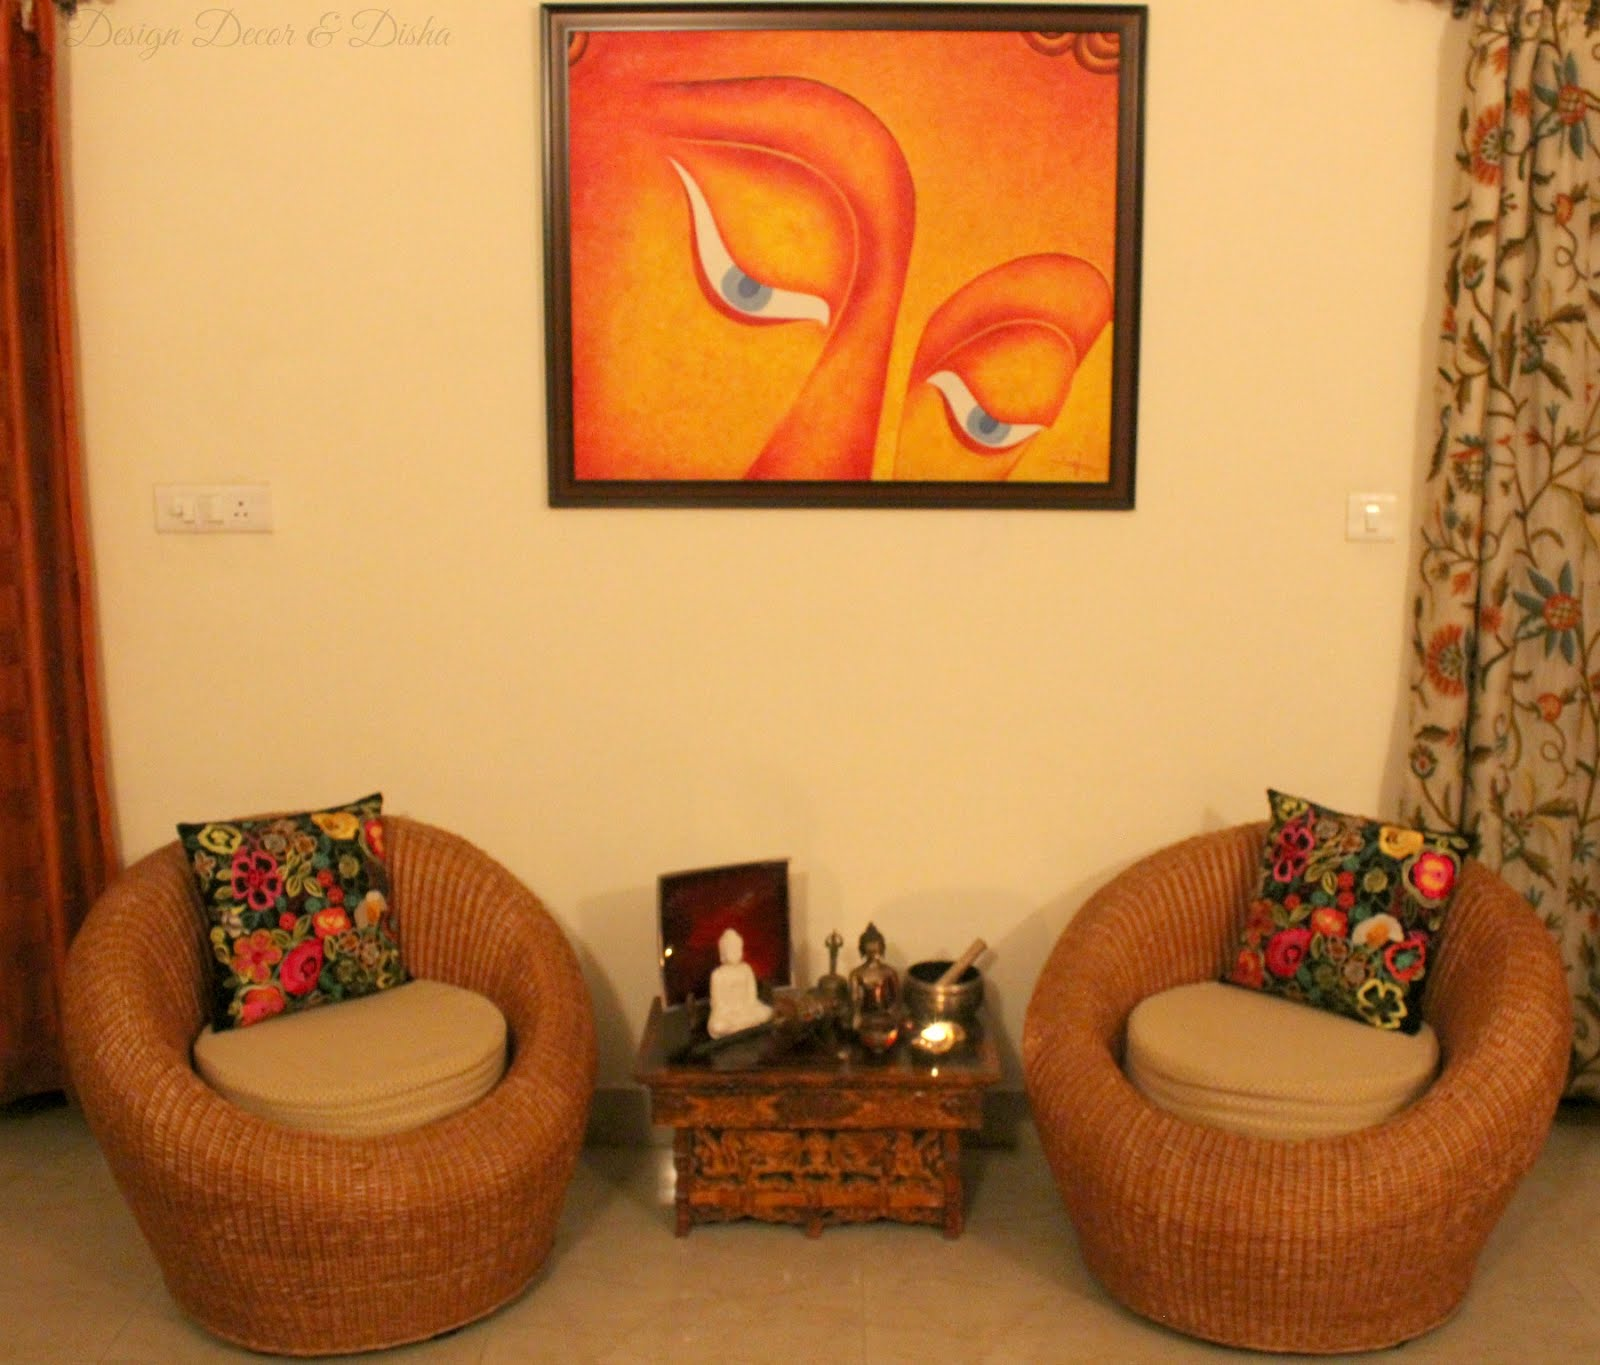 Design decor disha an indian design decor blog home for Home decor ideas